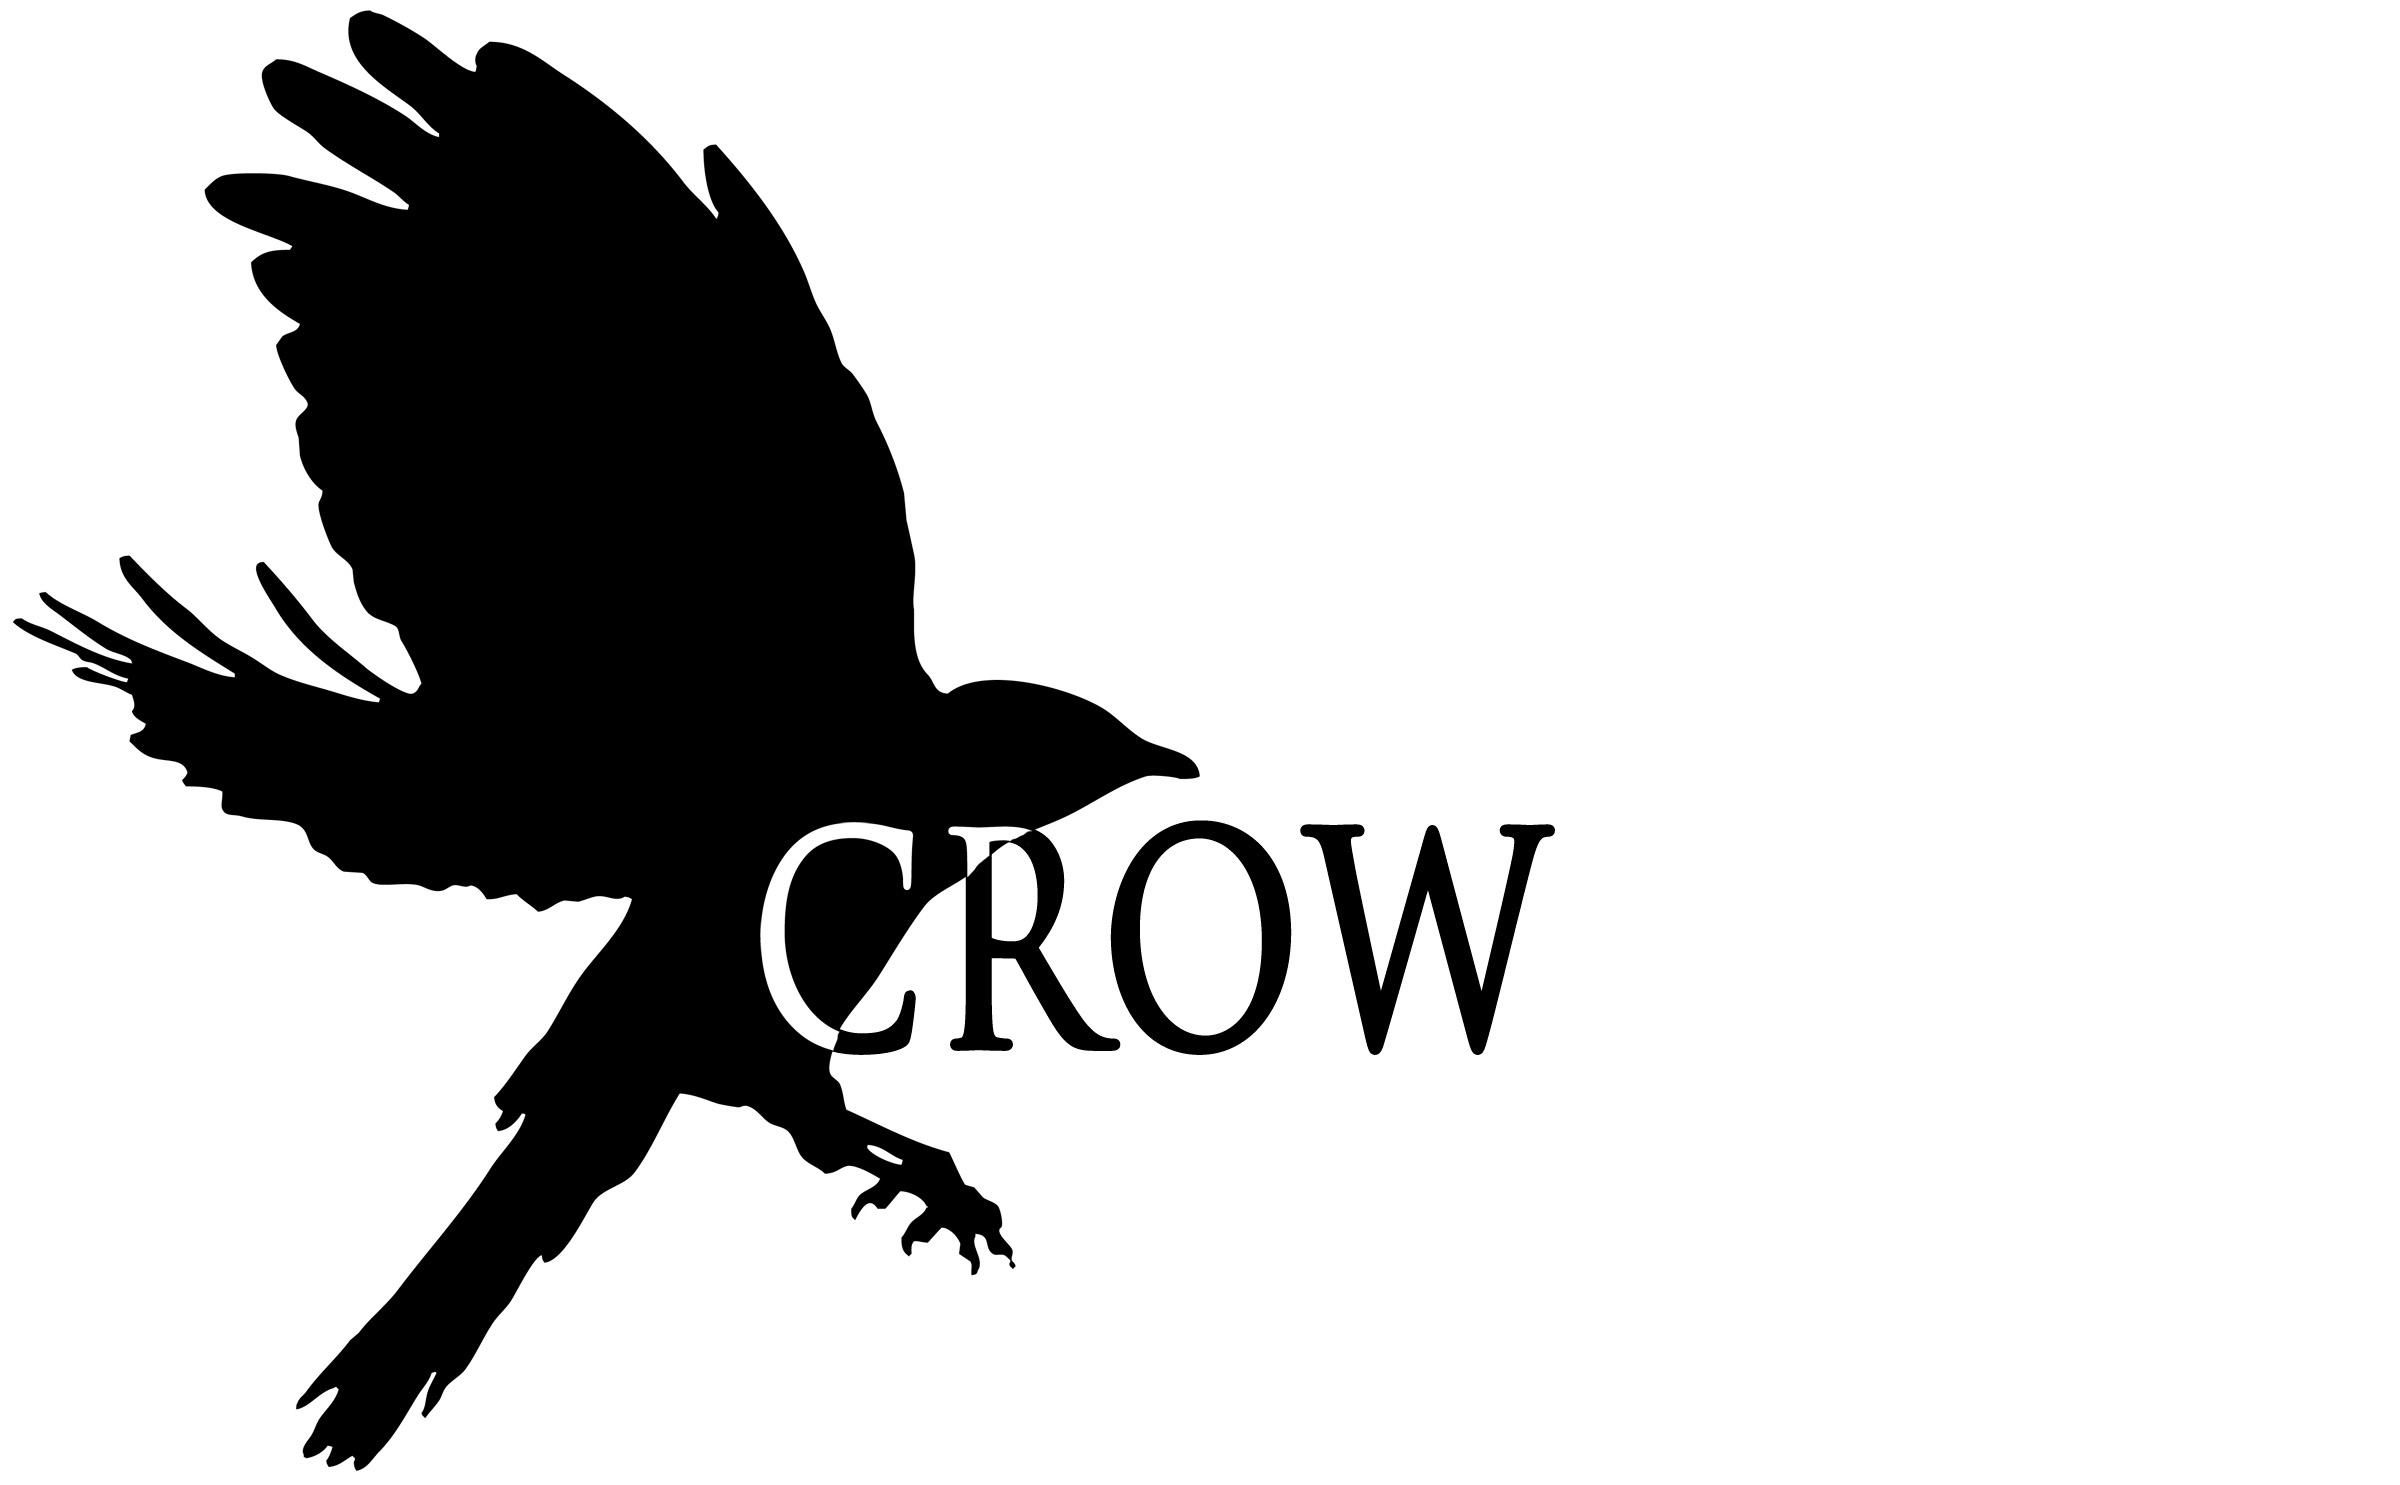 The crow logo - photo#7